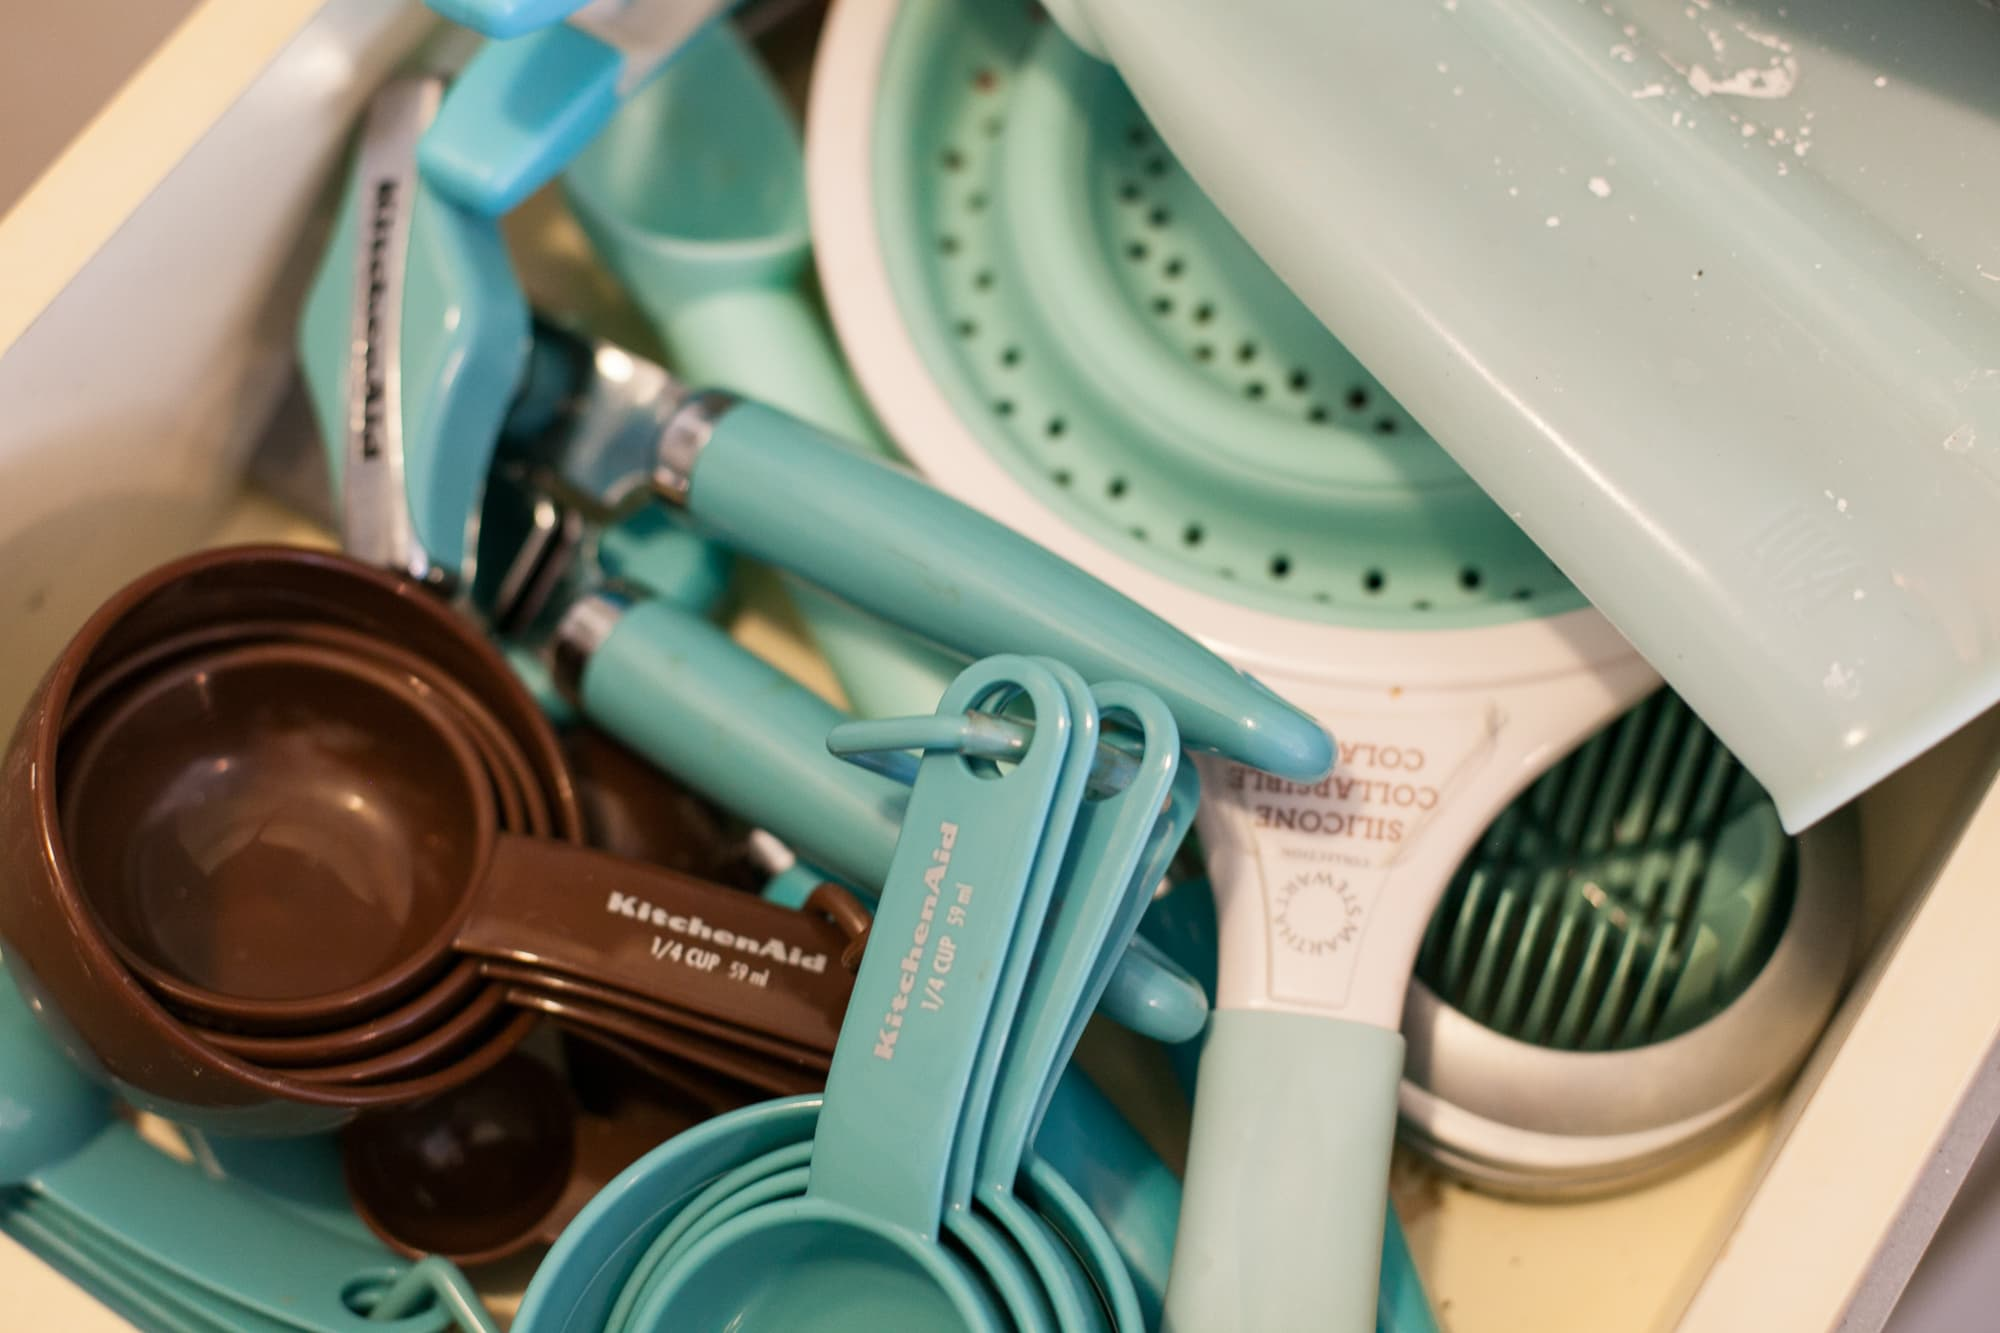 Even all my kitchen gadgets are teal.